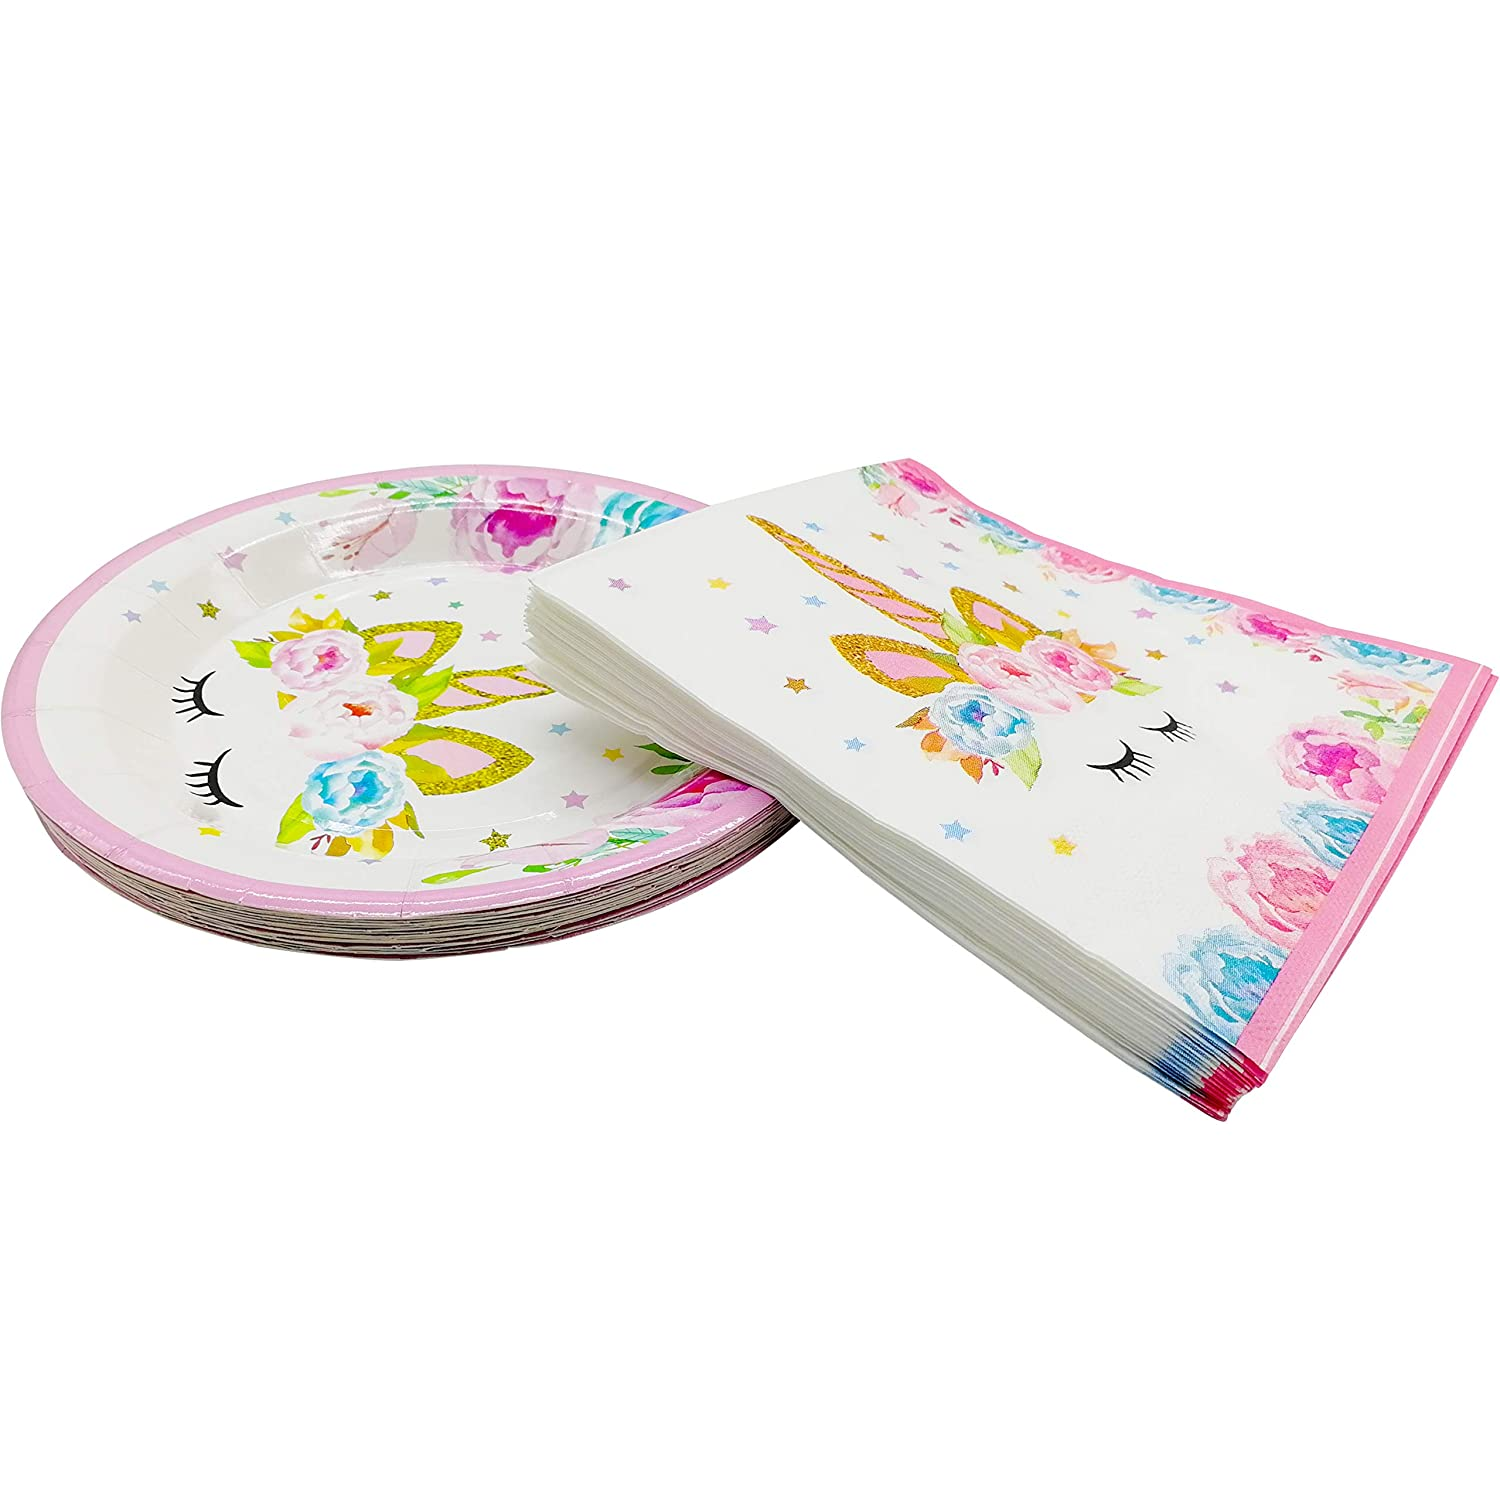 Unicorn Dinner Plates and Napkins Unicorn Theme Birthday Party Decorations for Girls Kids and Baby Wedding Shower Fit 16 Guests Unicorn Party Supplies Set